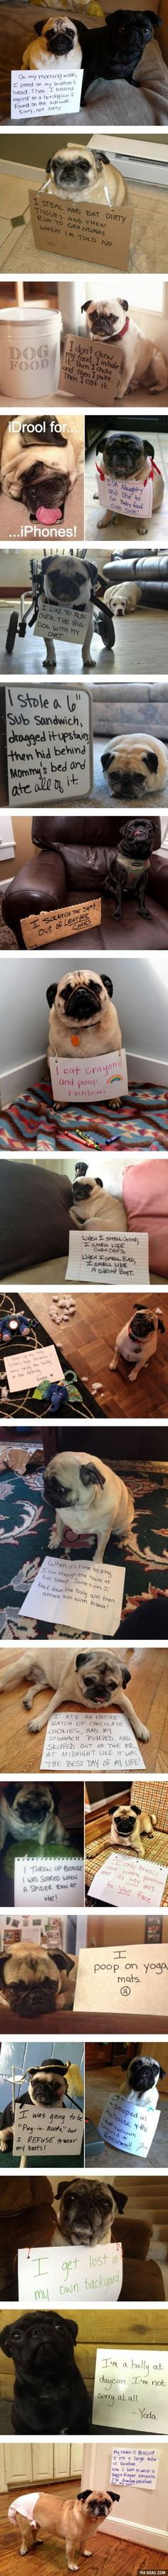 "Pug Shaming... Some of these are hilarious... The ""I only know one position"" thing must be a pug trait.:"